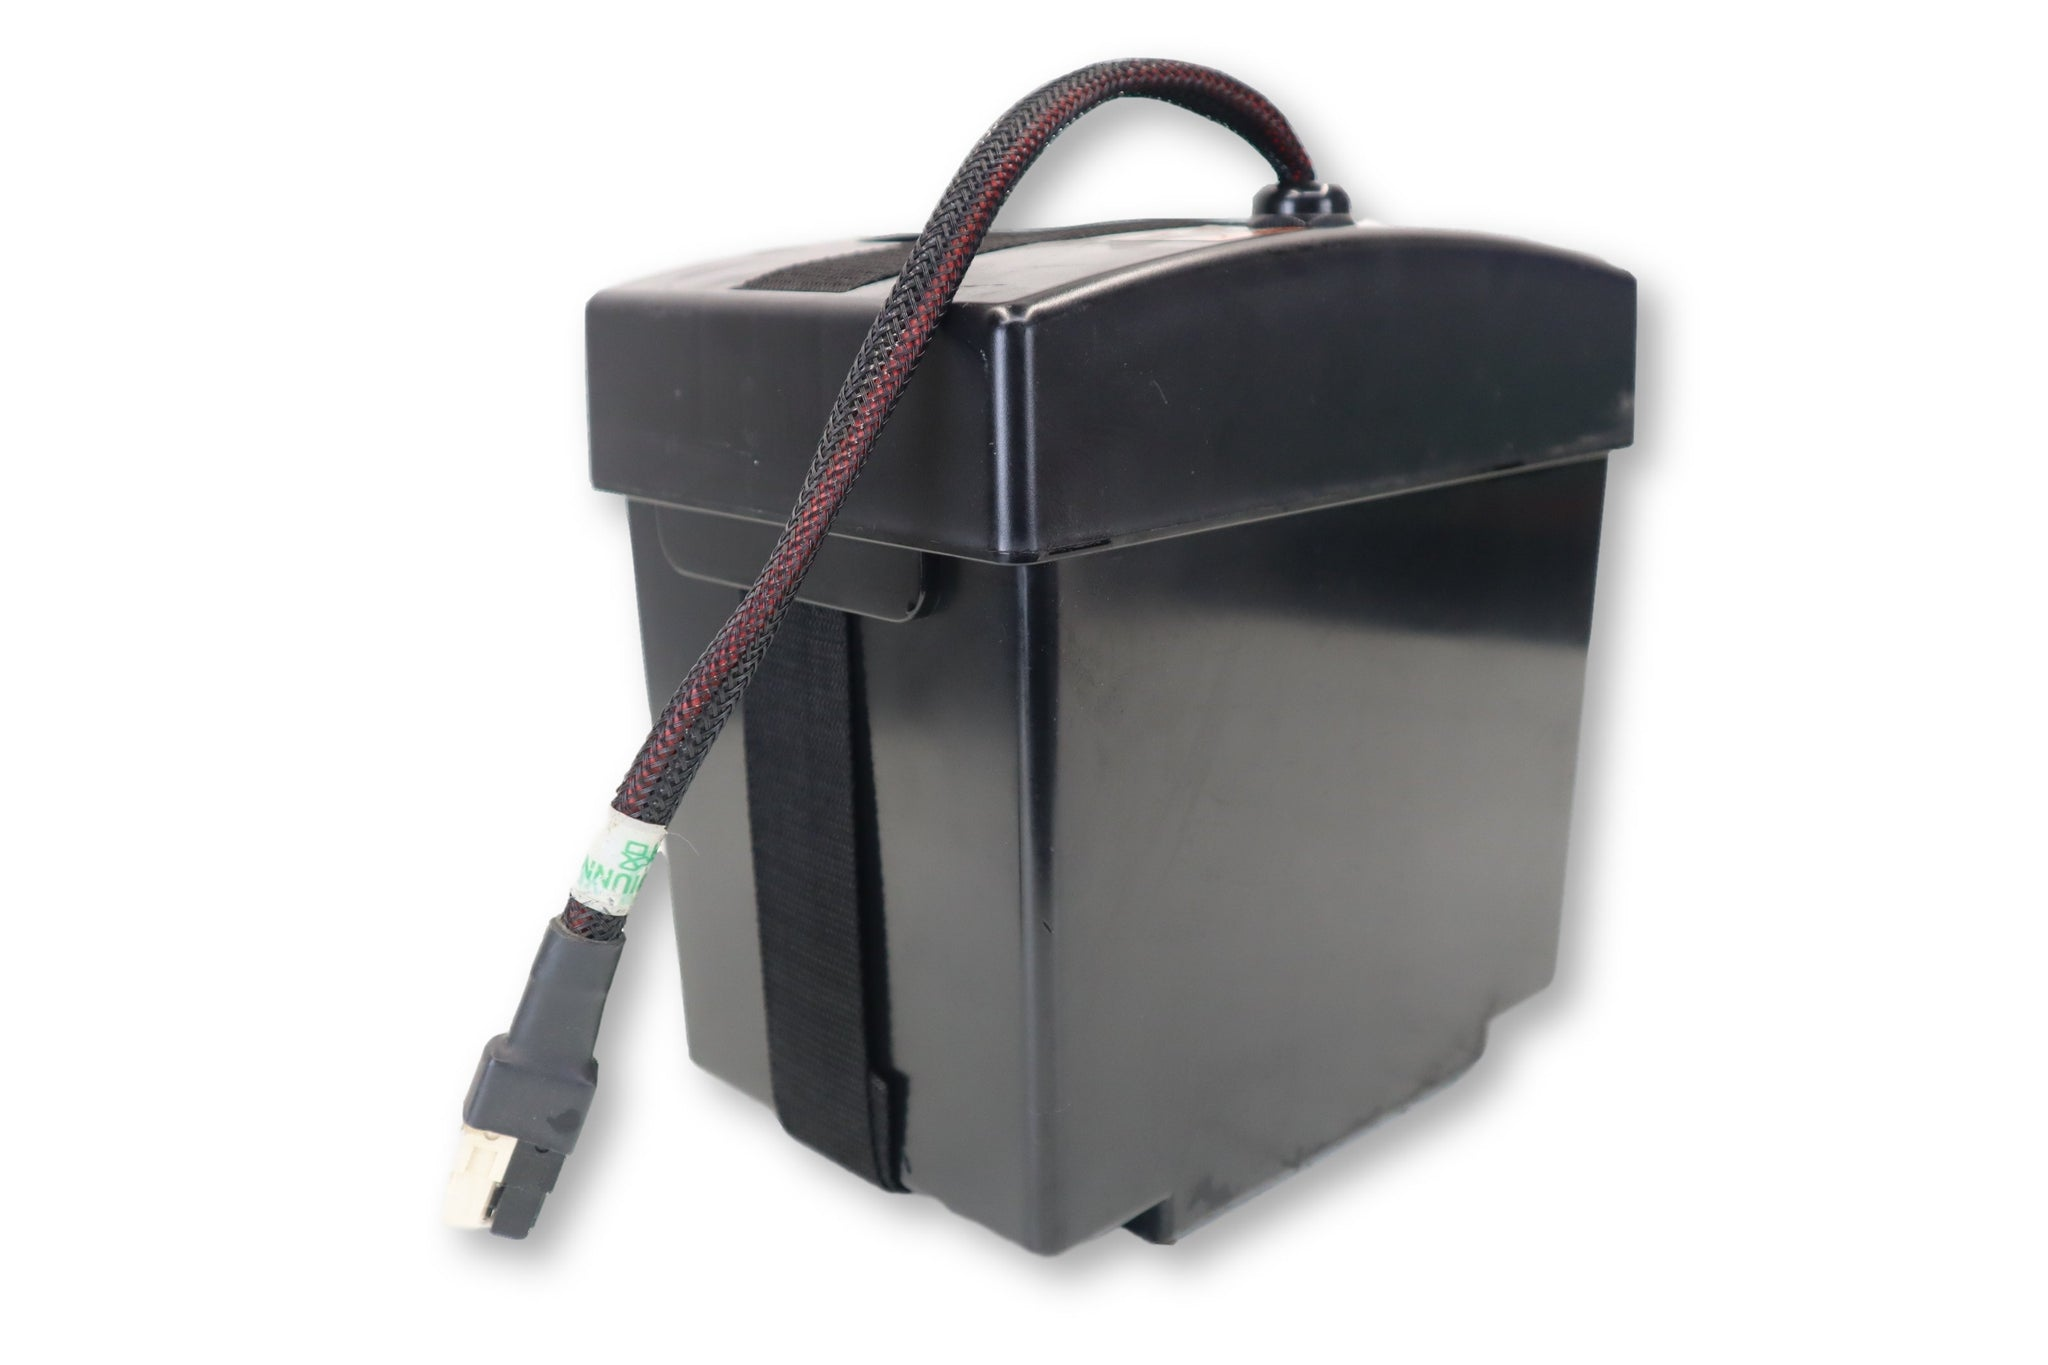 Battery Box for Jazzy 1113 ATS & Jazzy Select 7 Electric Wheelchairs | 35AH Sealed Lead Acid (SLA) or GEL Battery Box | Pride Mobility Products